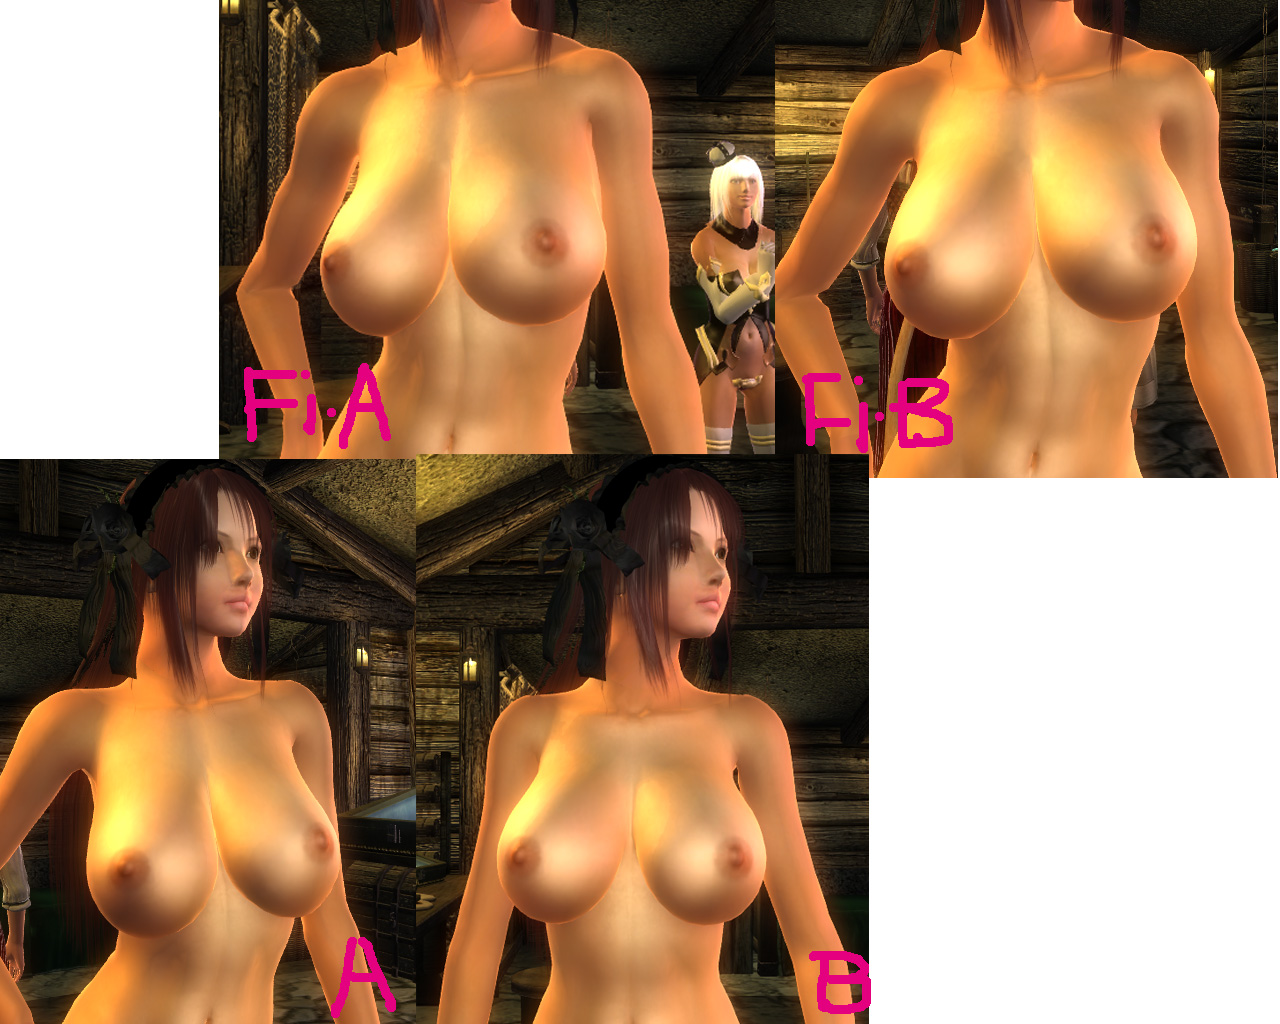 Oblivion nude sex patch sex streaming